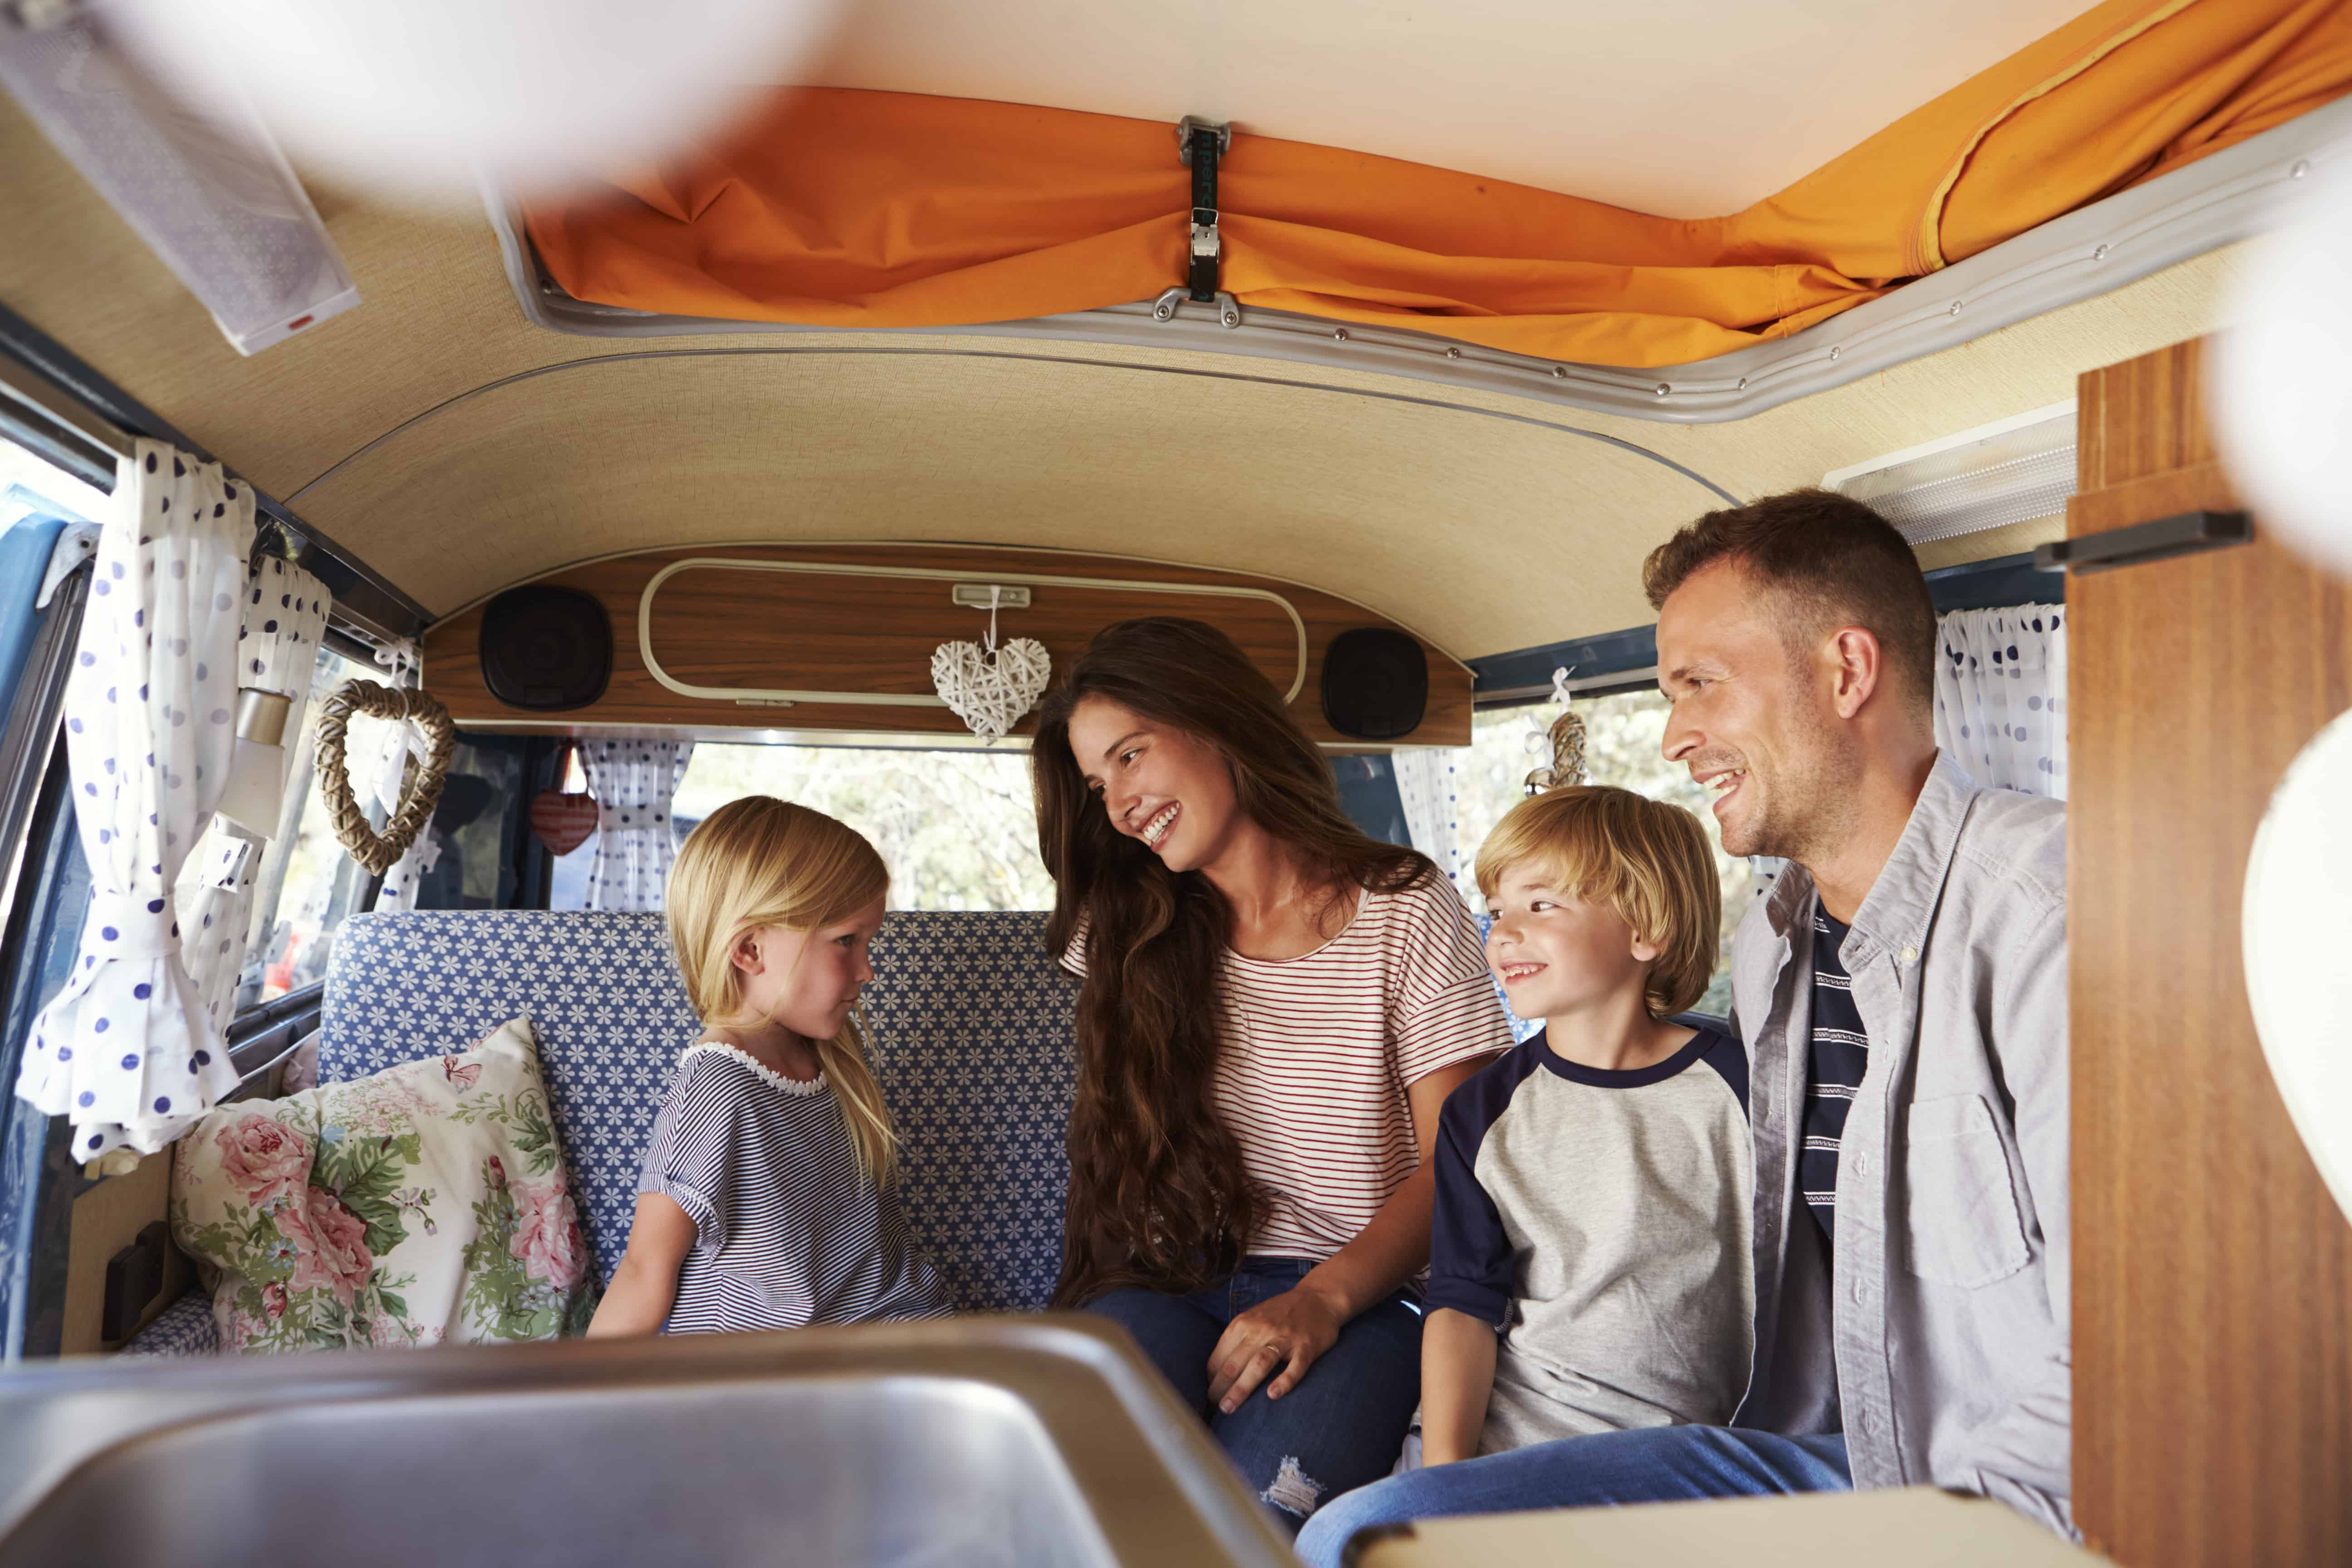 Family sitting inside a camper van looking at each other